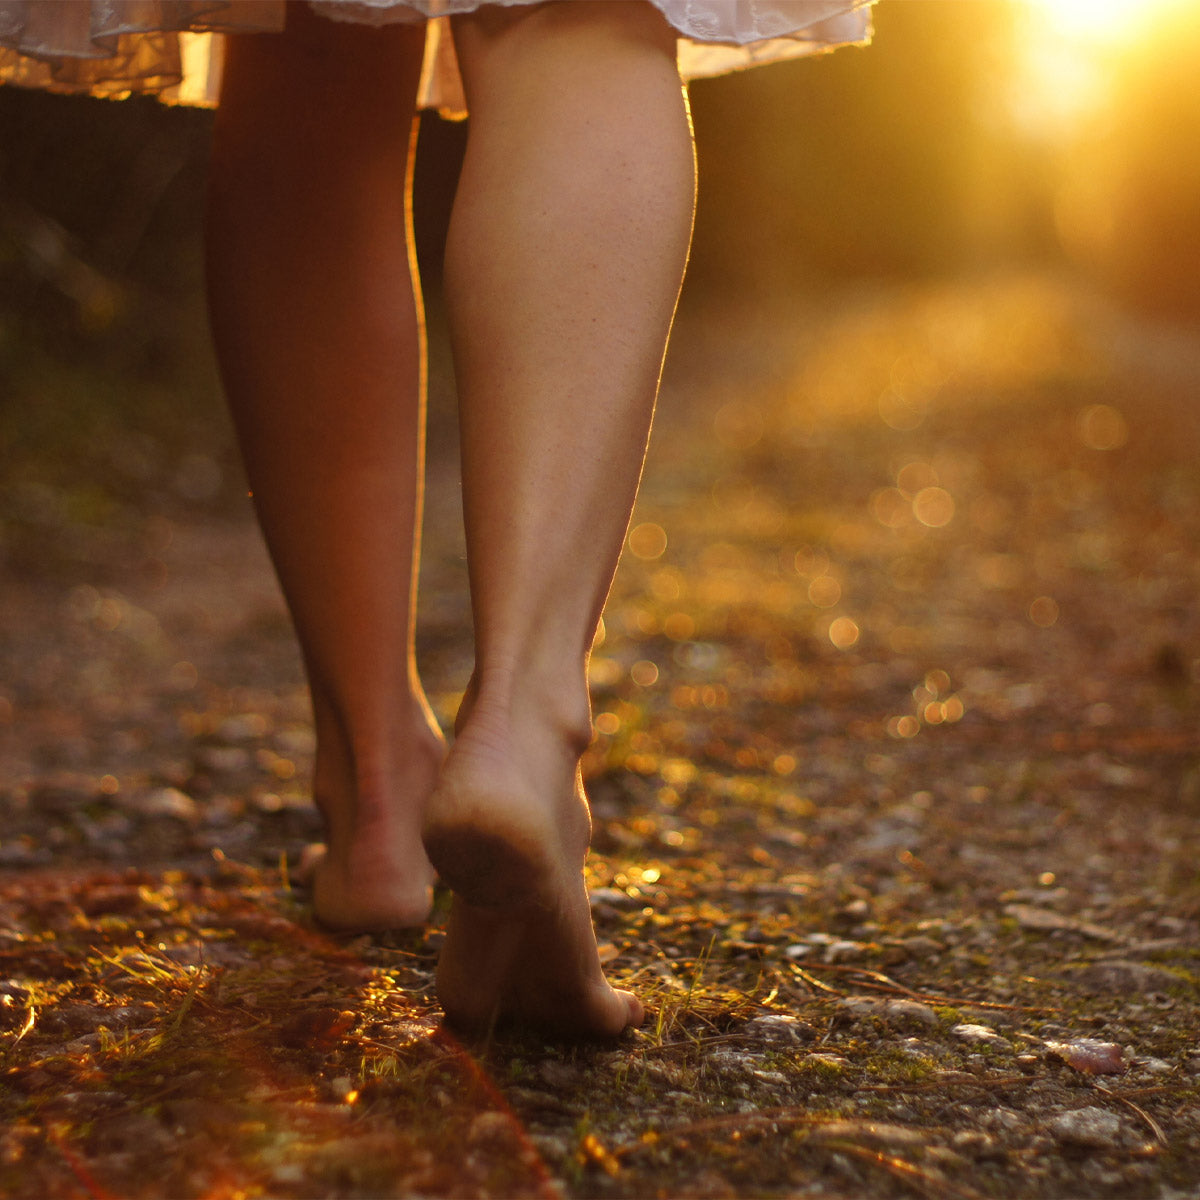 Try Mindful walking